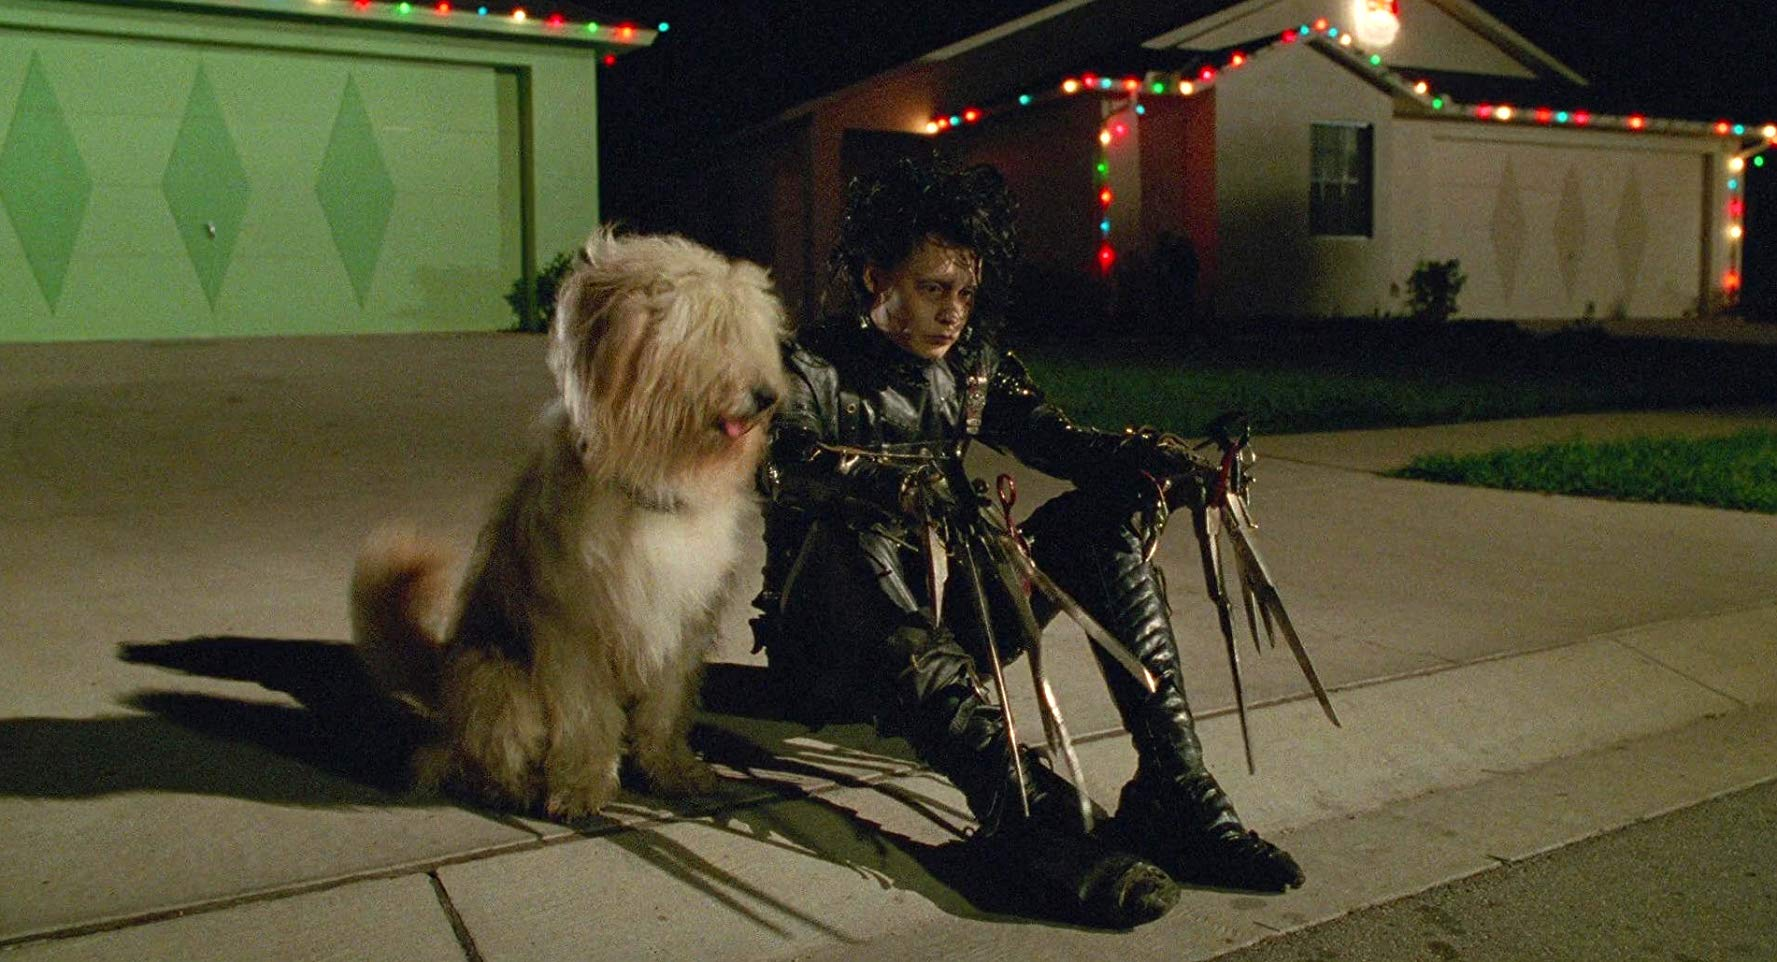 Johnny Depp as the dejected Edward - Tim Burton's quintessential alienated outsider in Edward Scissorhands (1990)